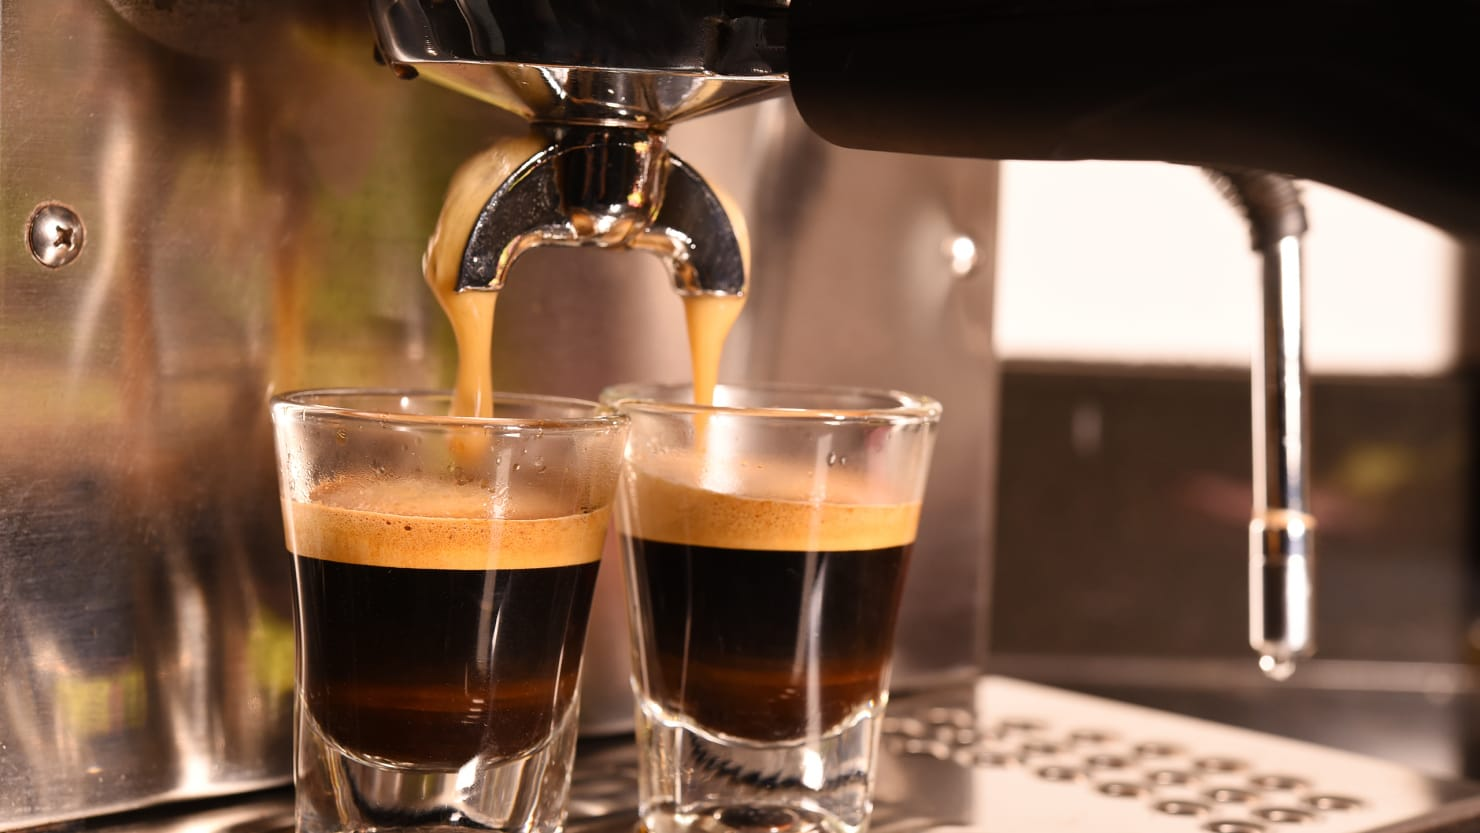 How I Learned To Make The Perfect Espresso At Home